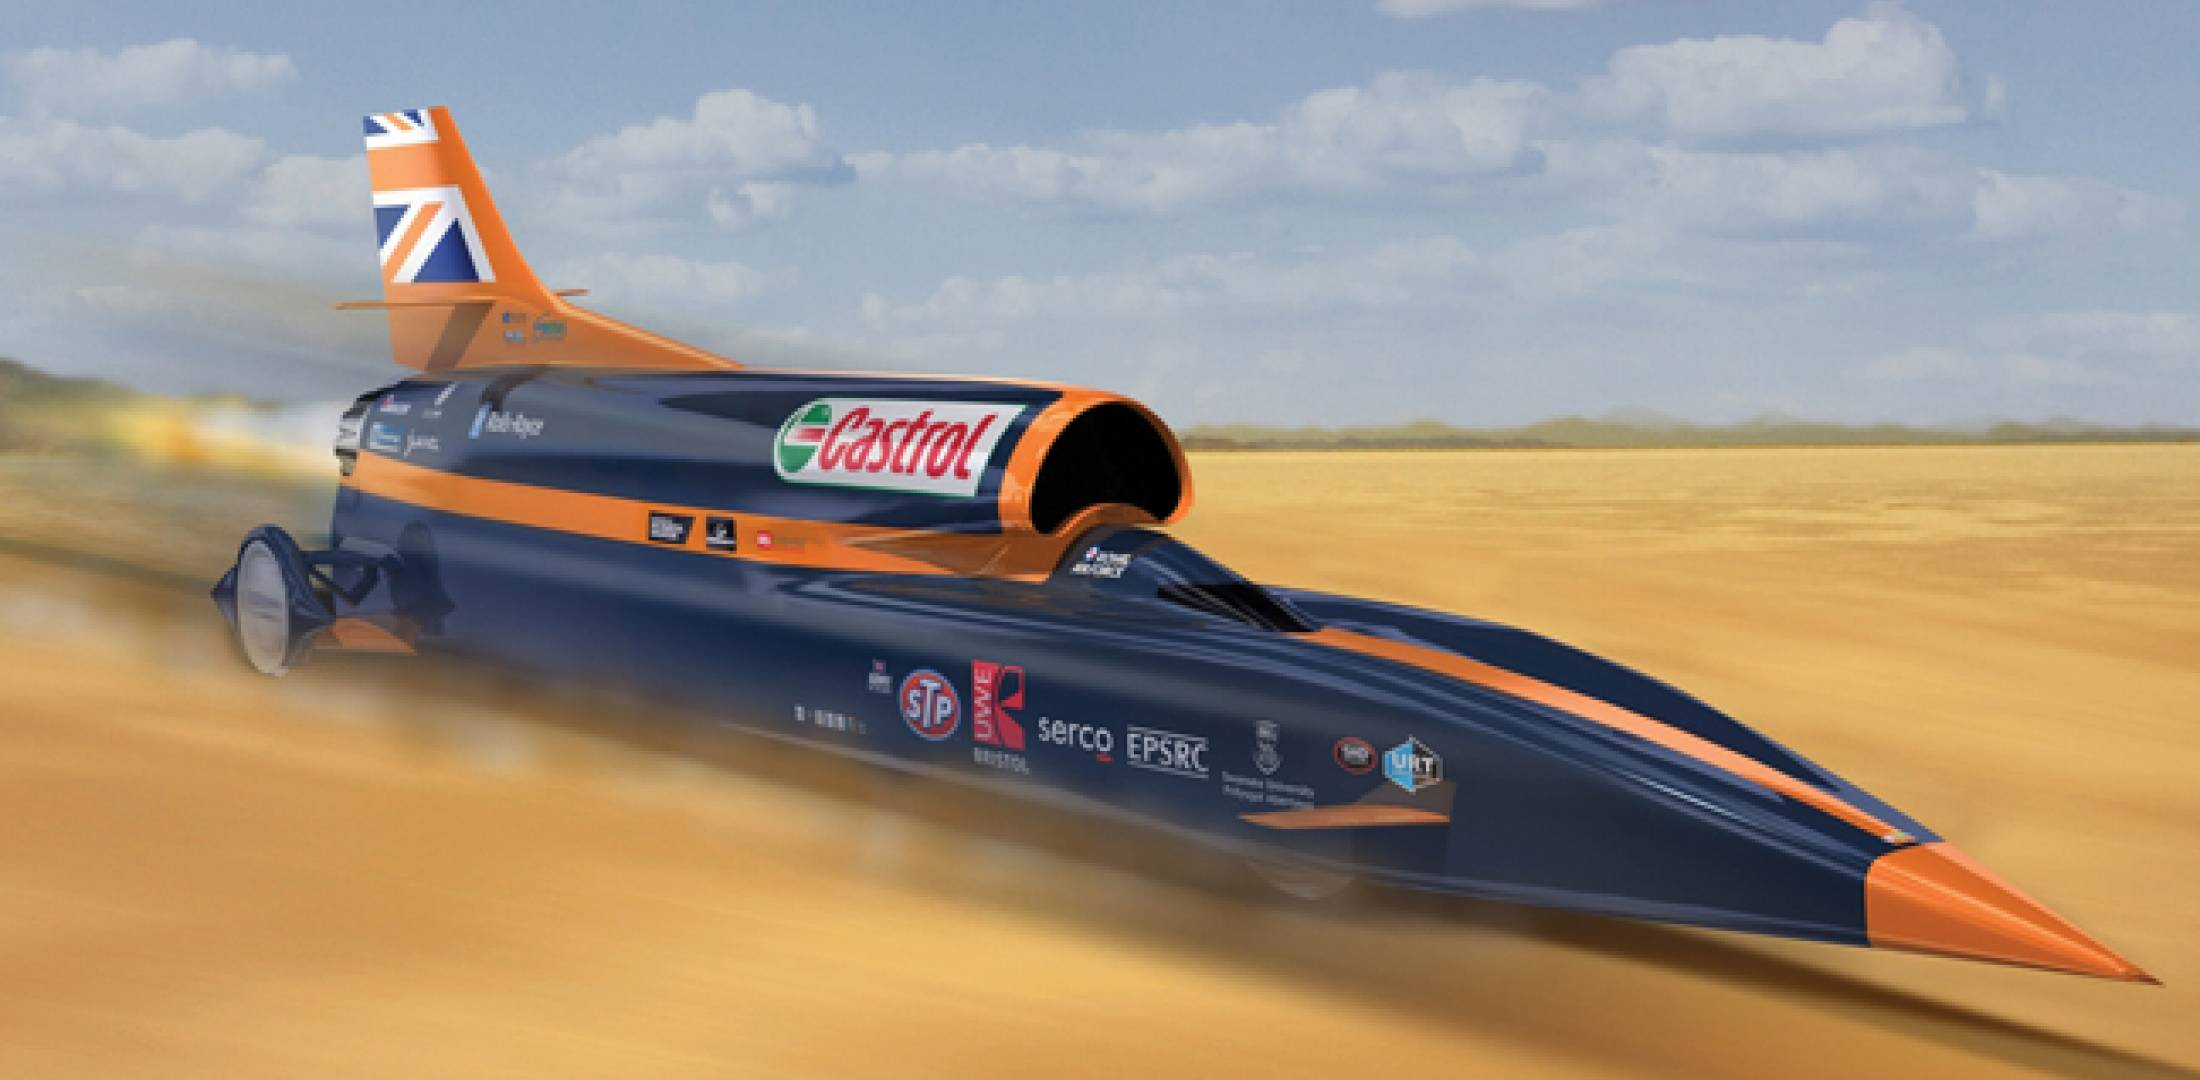 Artist's impression of Bloodhound SSC during a record run. The actual record attempts are planned to take place in South Africa in 2016.  The car is appearing at Farnborough before heading for South Africa.